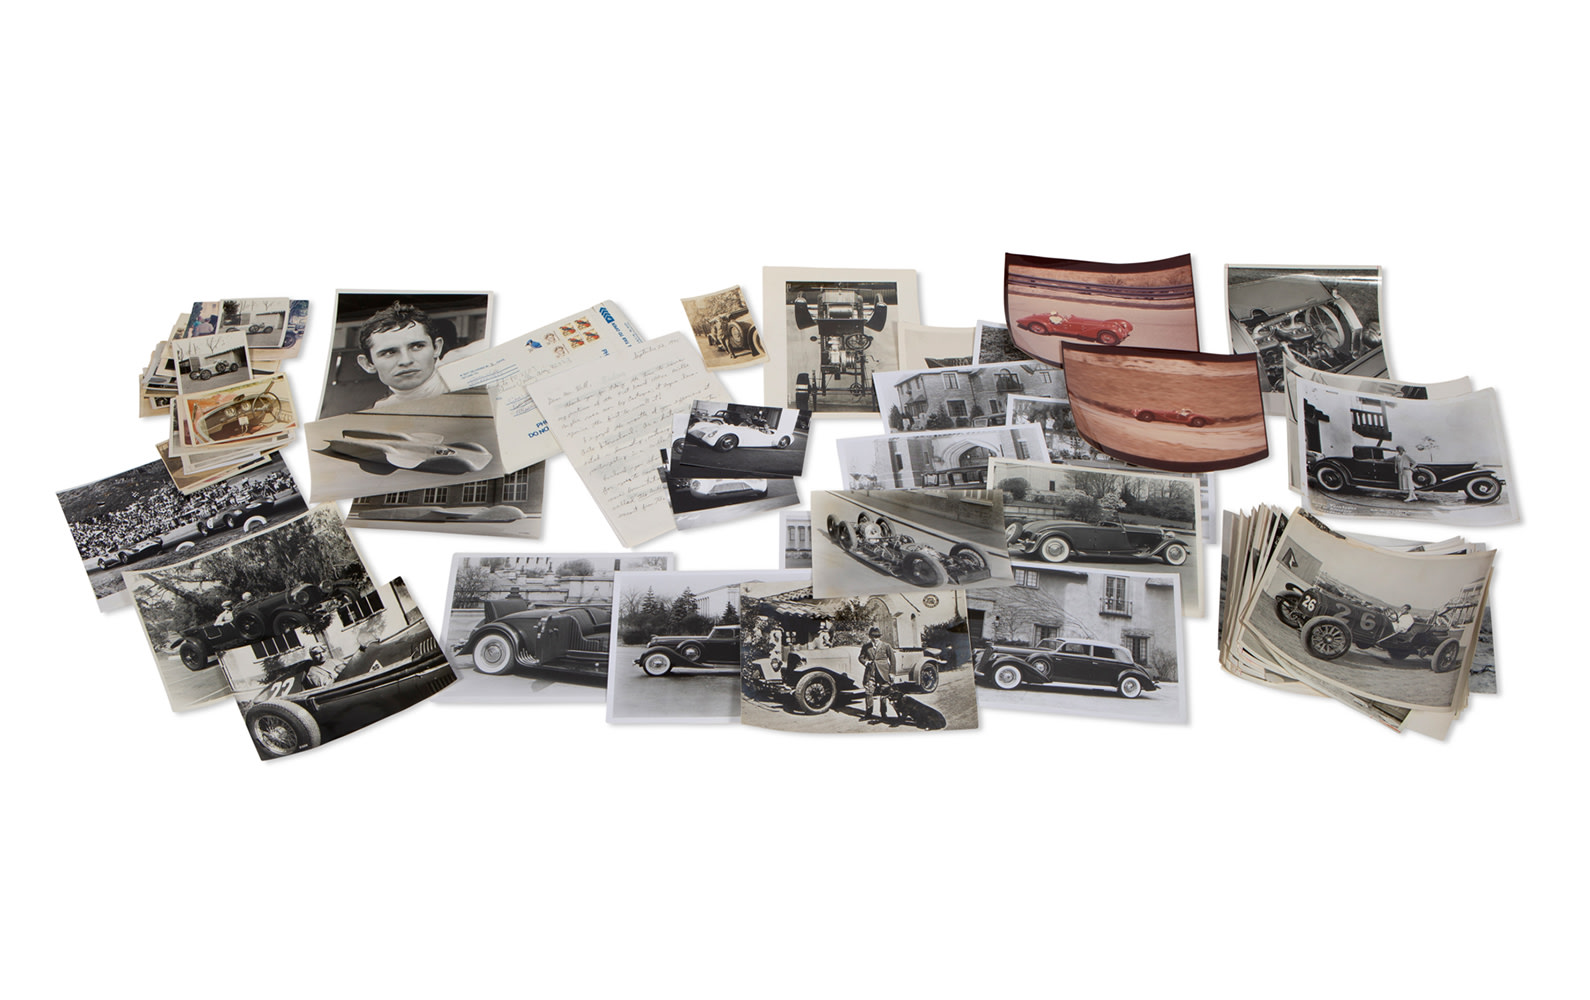 Assorted Color and Black and White Photographs Featuring Ferrari, Alfa Romeo, Rolls Royce and More